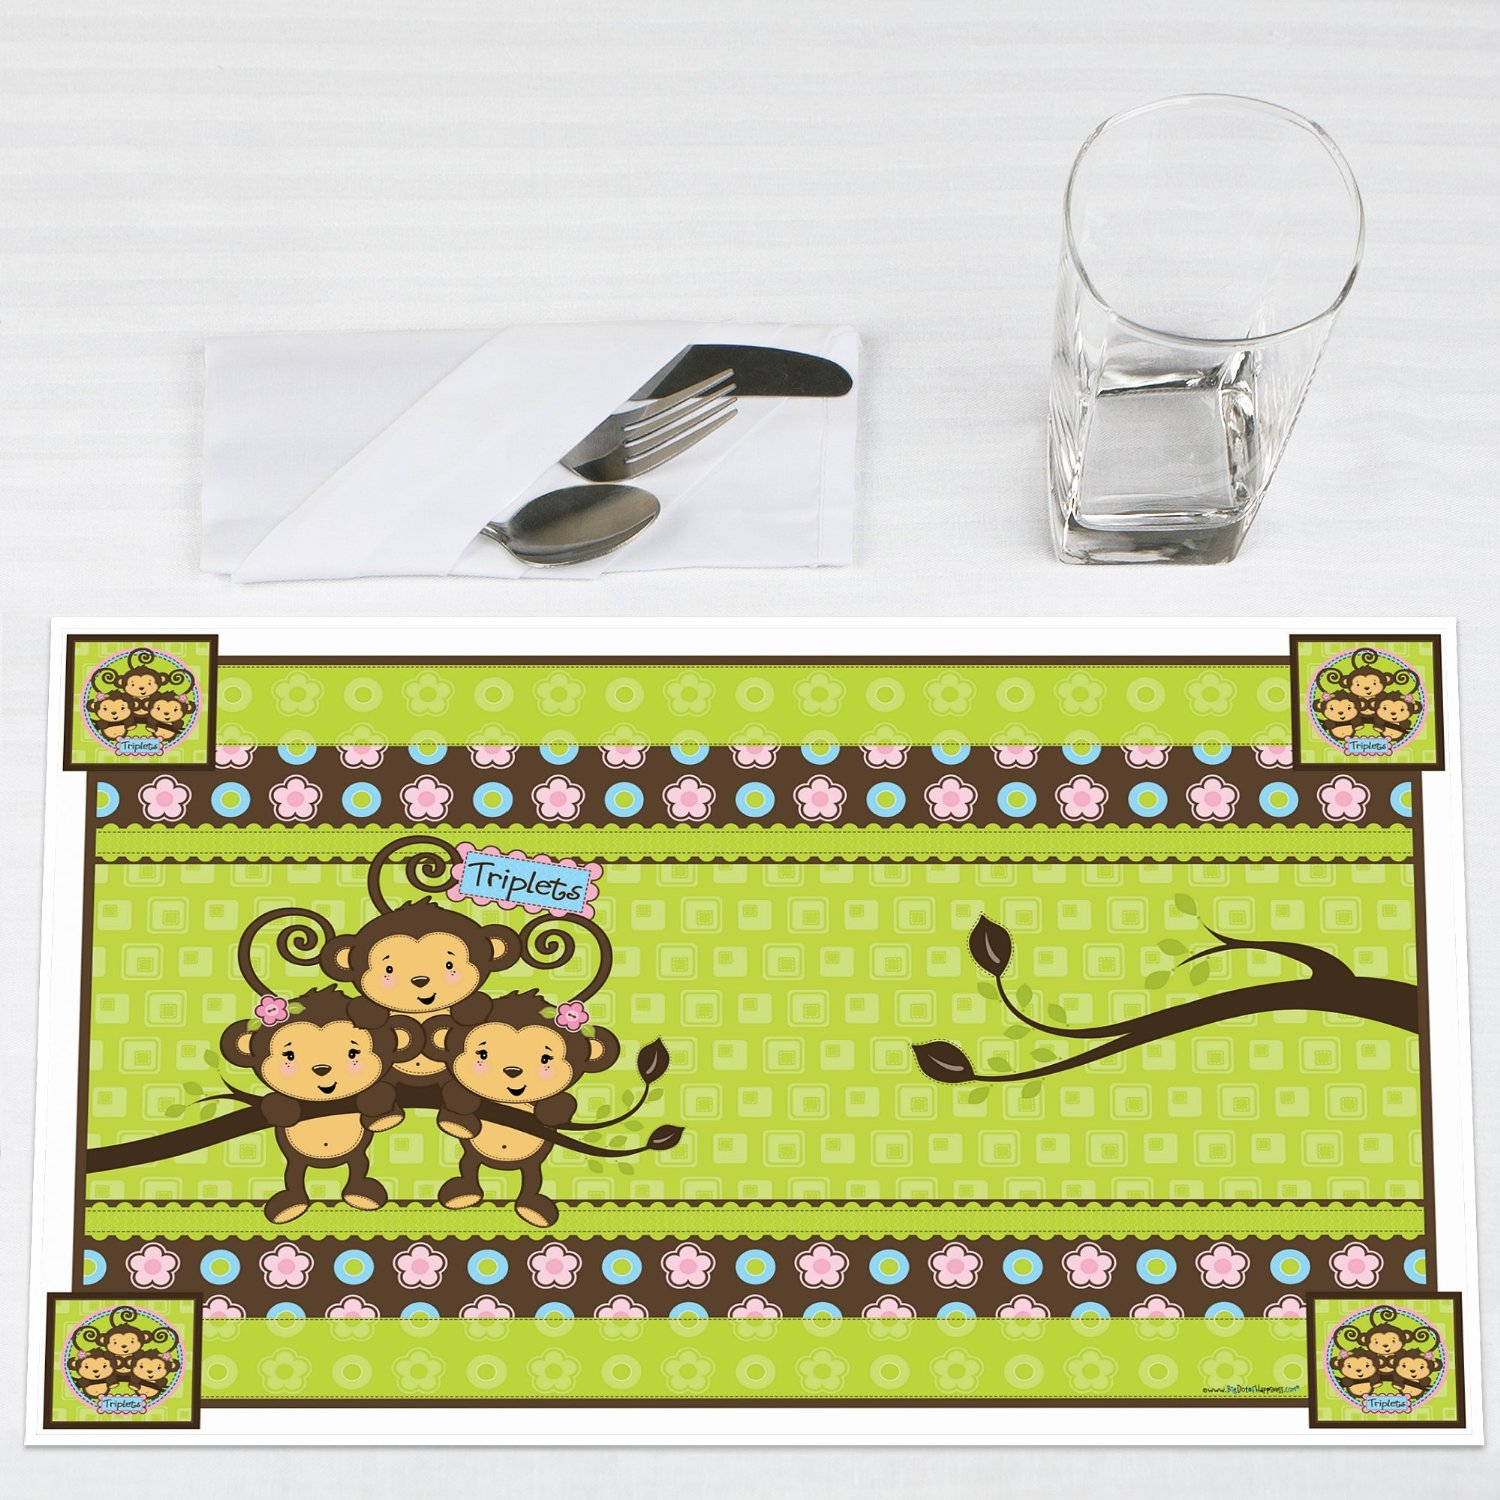 Triplet Monkeys 2 Girls & 1 Boy Party Placemats Set of 12 by Big Dot of Happiness, LLC